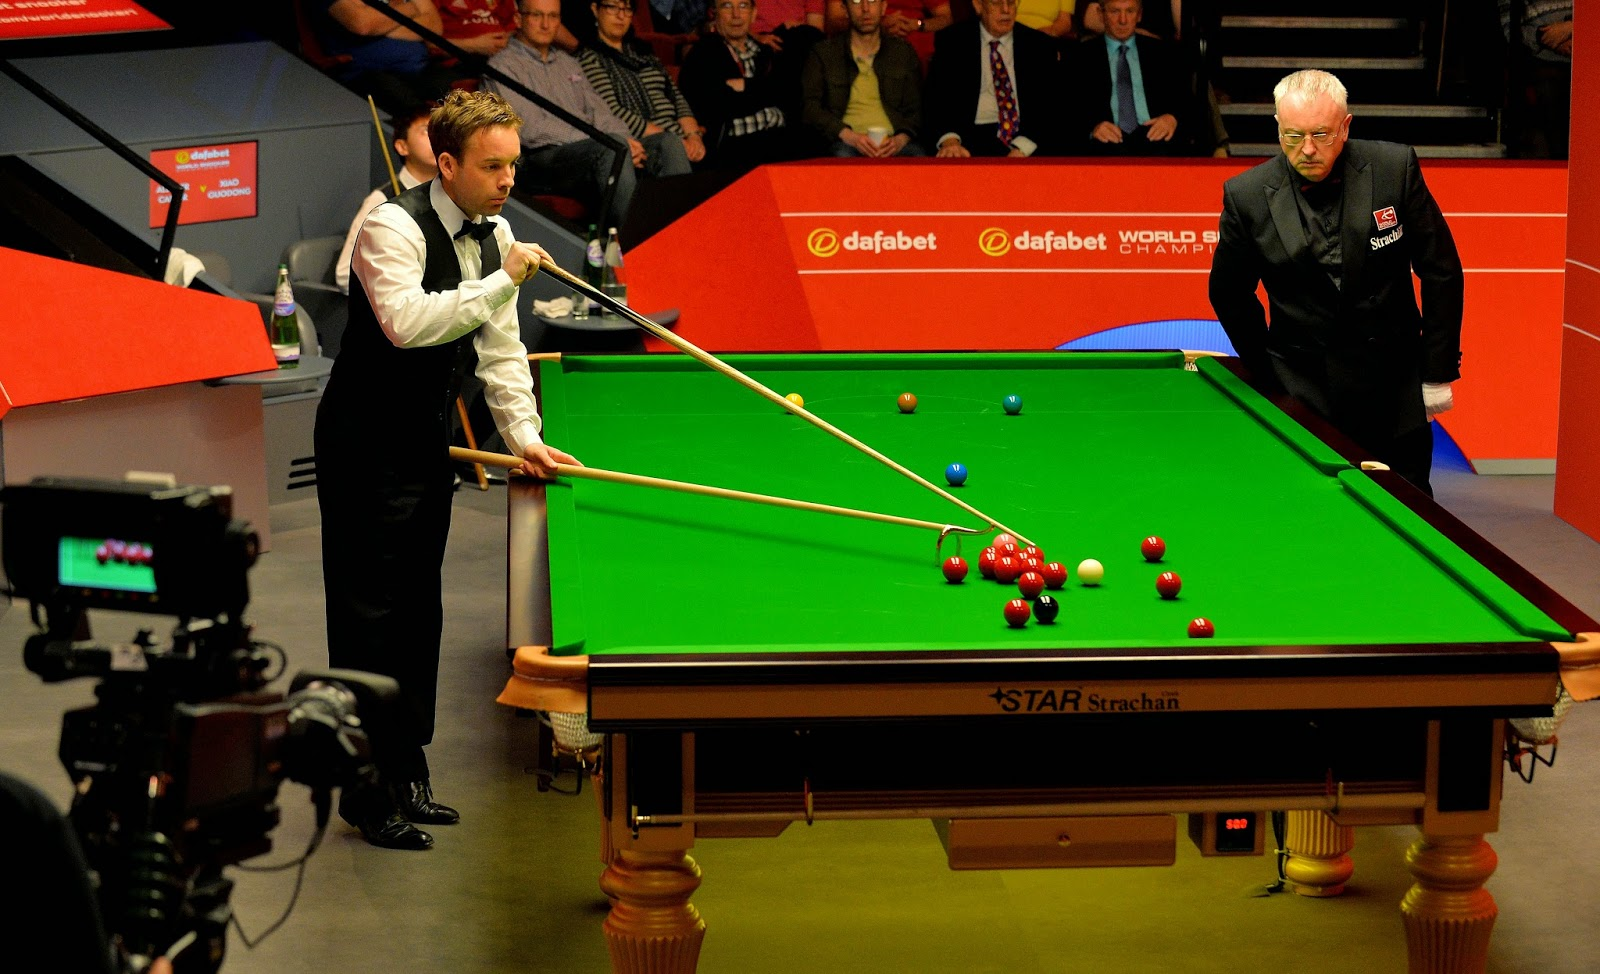 Allister Carter, Allister Carter  vs Xiao Guodong, Crucible, England, Sheffield, Snooker, Snooker Championship, Snooker Players, Snooker Table, Sports, World Snooker Championship, Xiao Guodong,